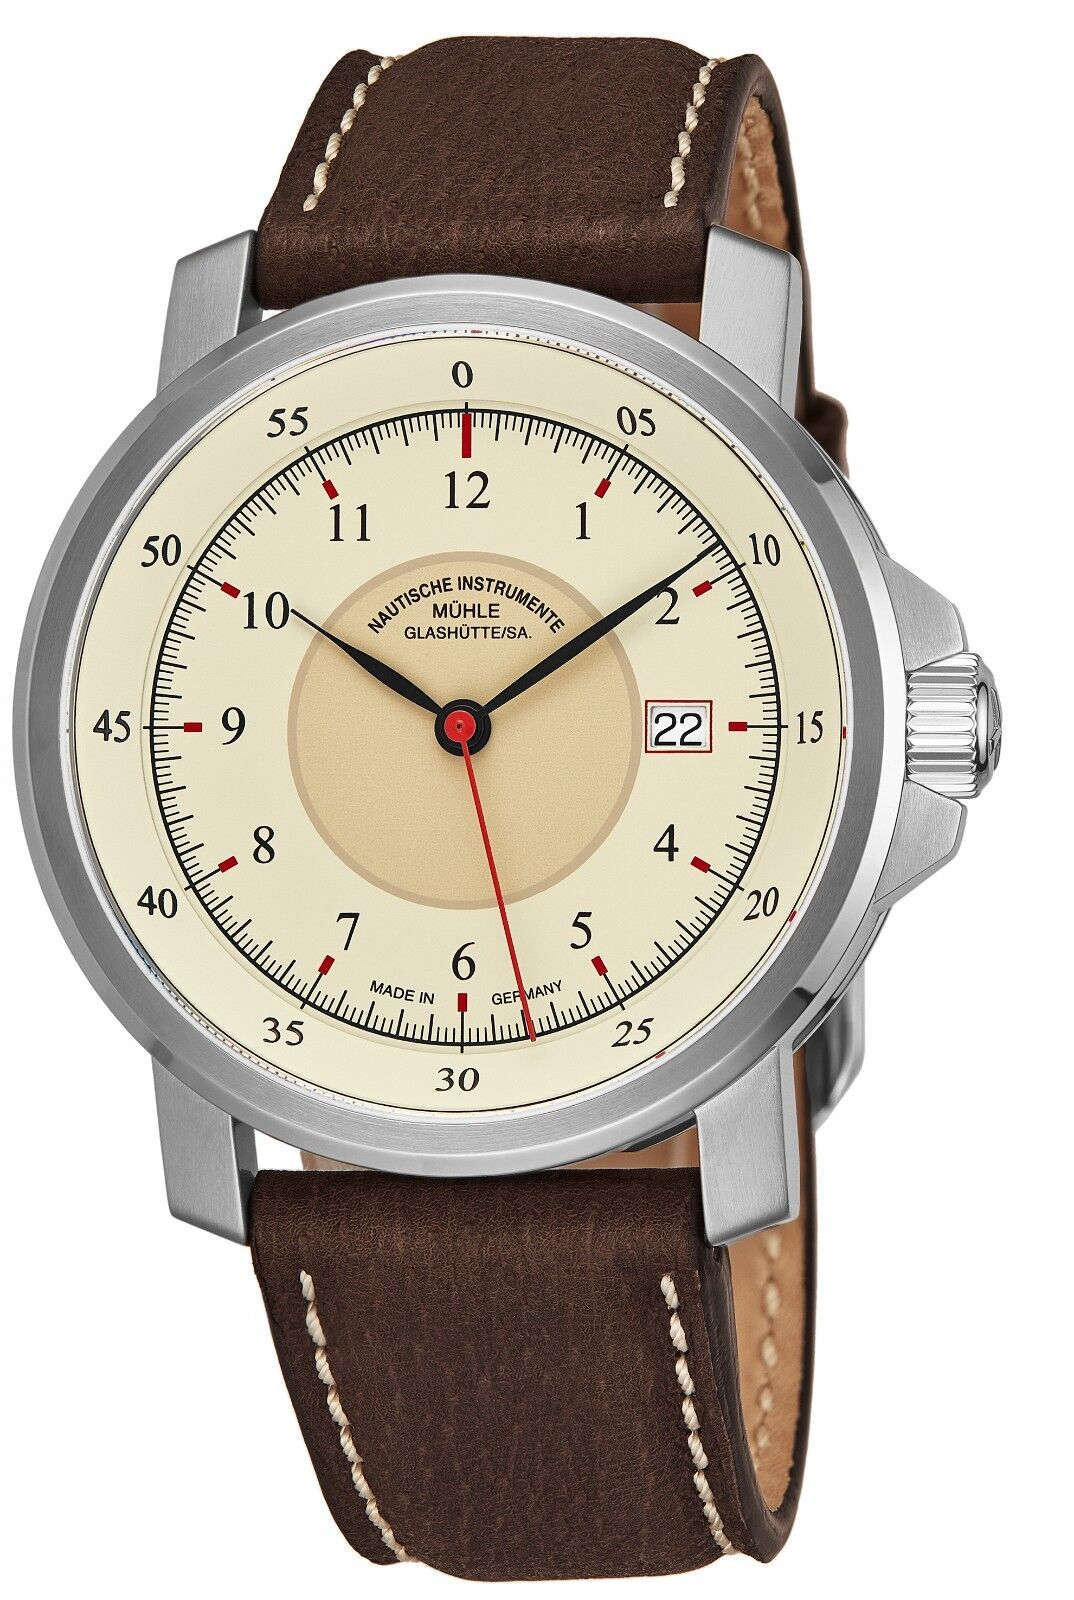 Muhle-Glashutte Men's M 29er Classic Leather Strap Automatic Watch M1-25-57-LB - watch picture 1